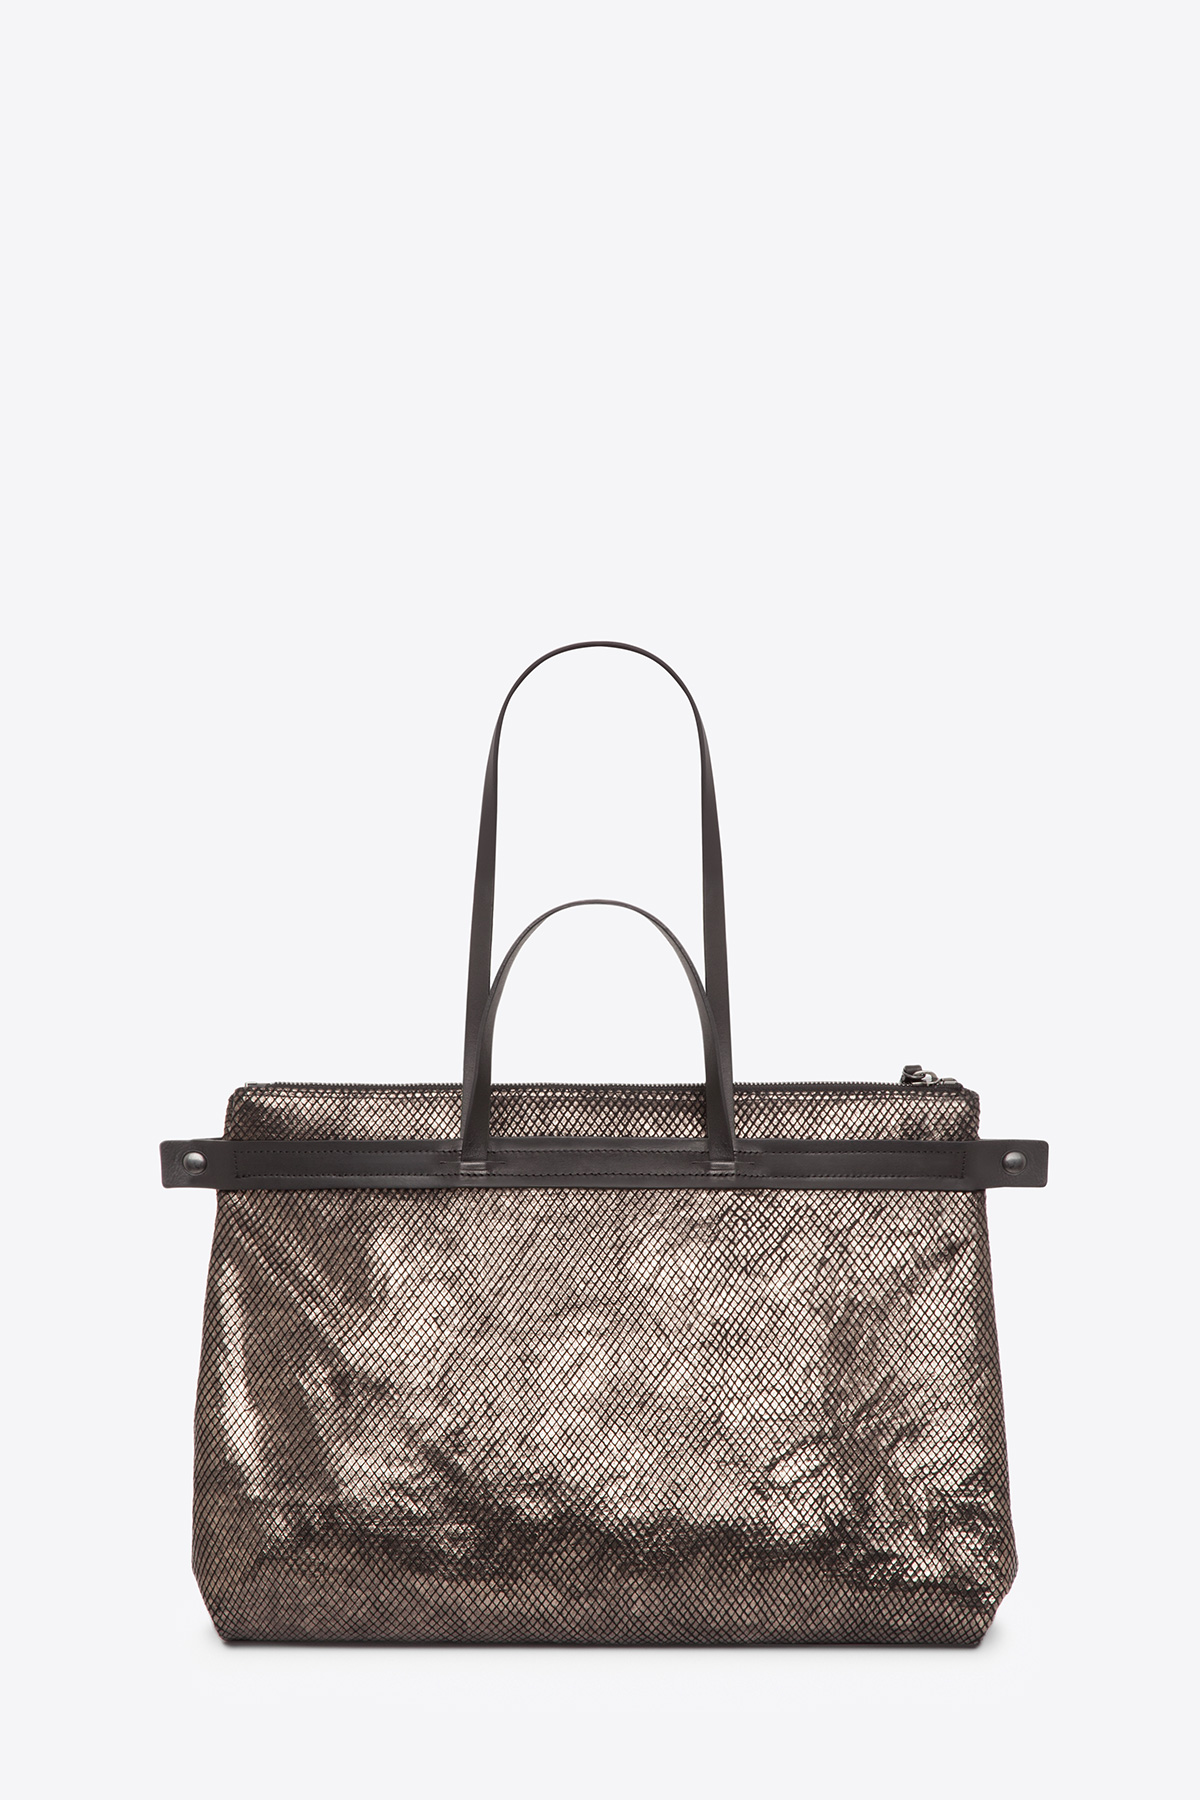 dclr007l-tote-a24-backsnakebronze-back